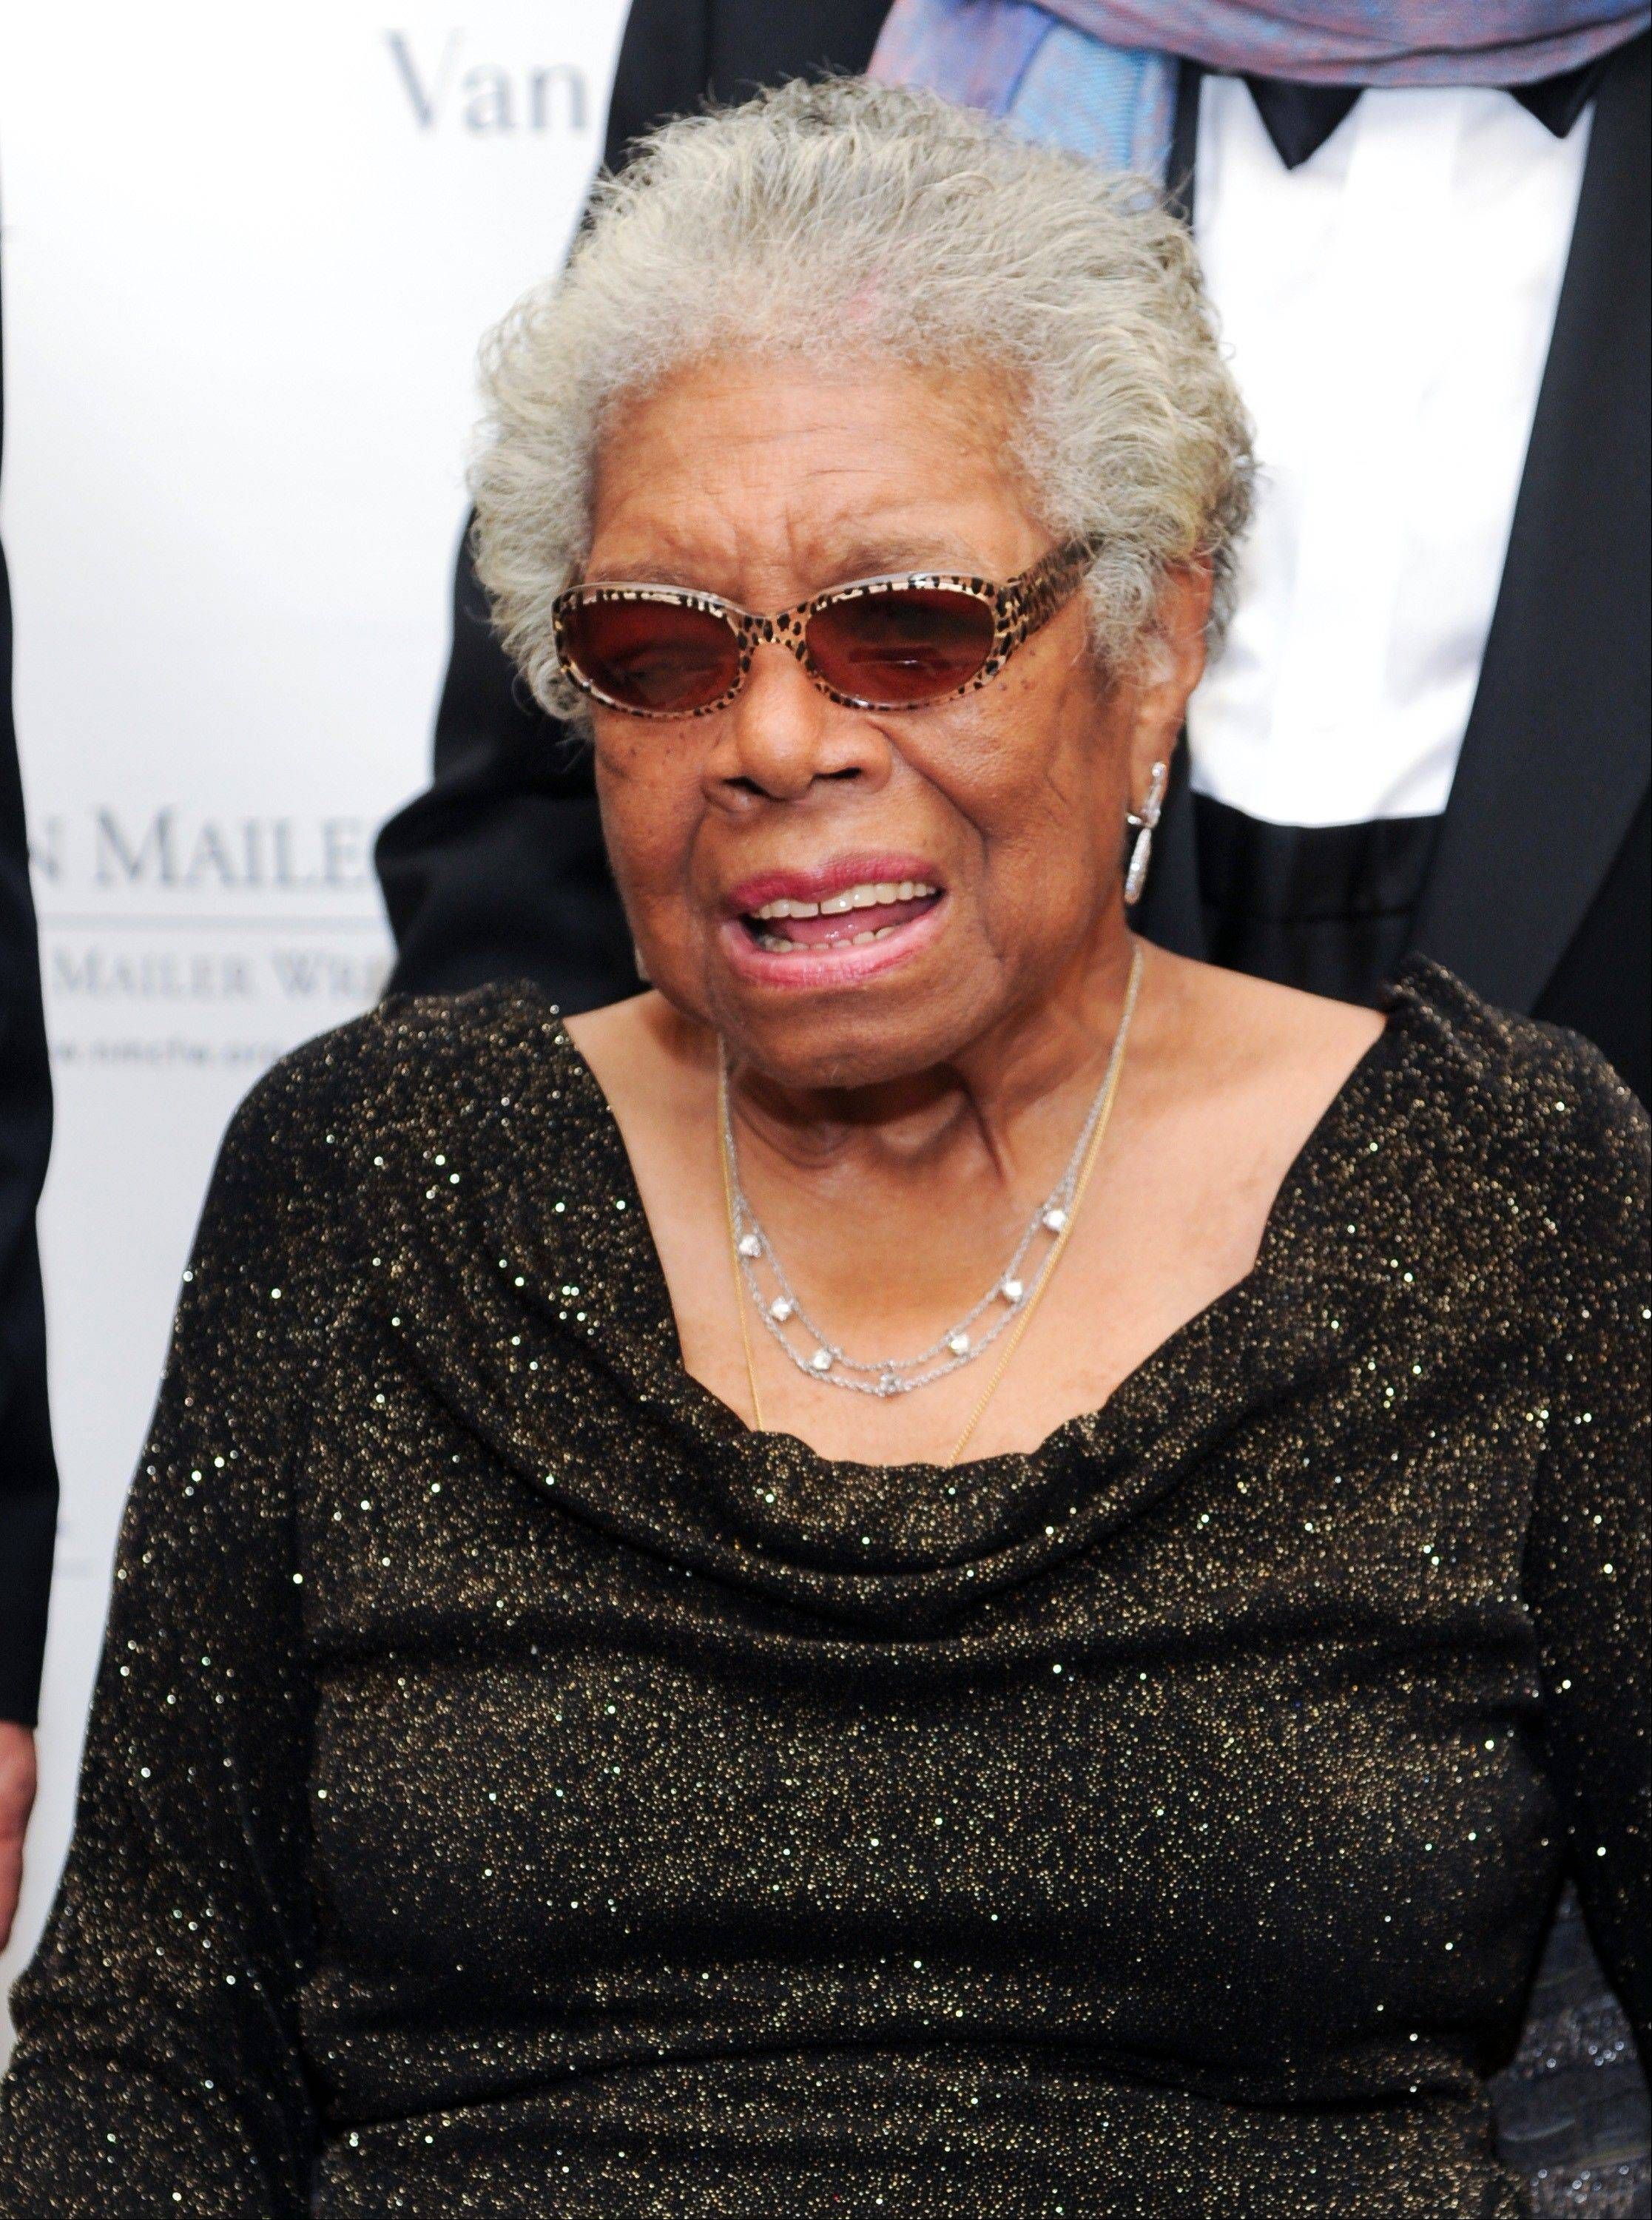 Maya Angelou received a Lifetime Achievement Award during the fifth annual Norman Mailer Center benefit gala at the New York Public Library on Thursday in New York.